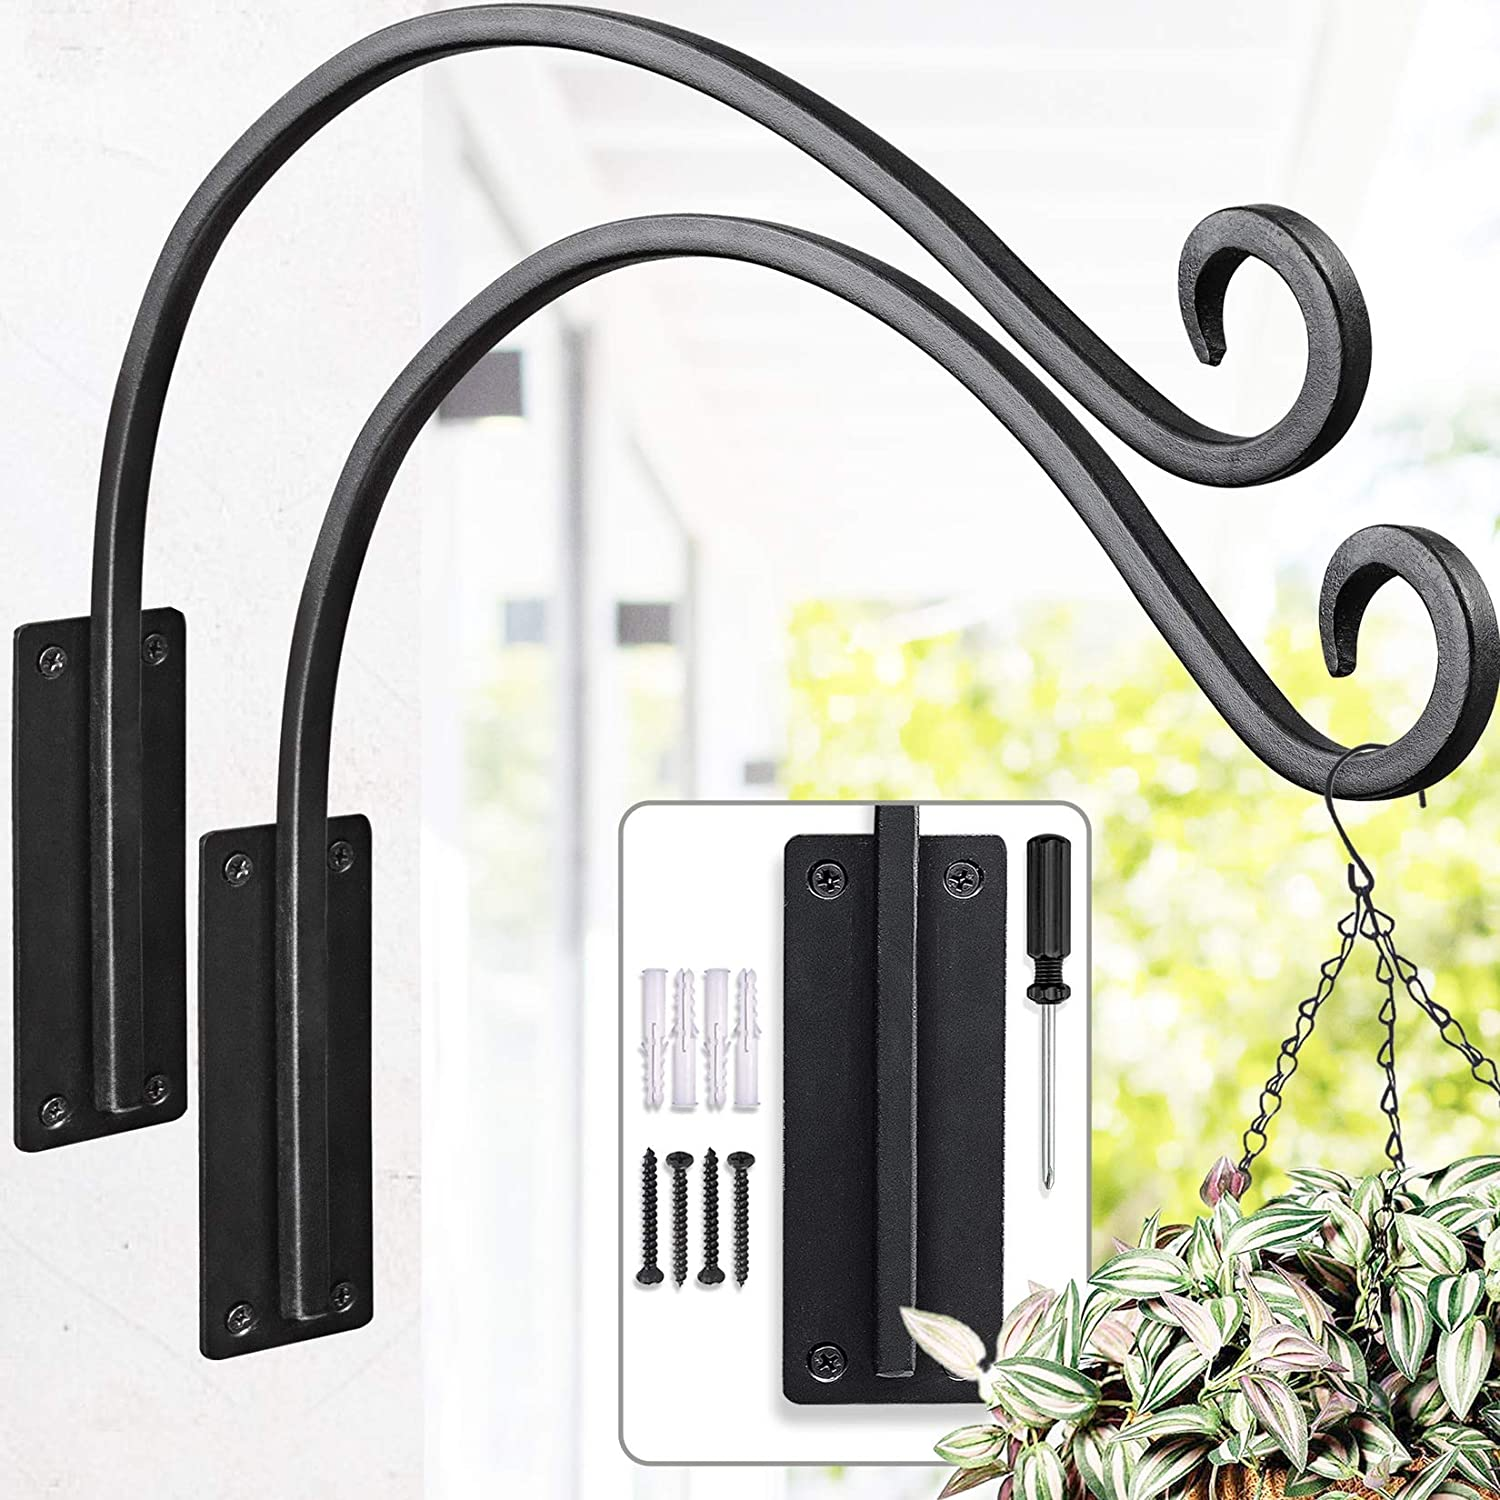 Bird Feeder Brackets (16 Inches / 2 Pieces) Outdoor Plant Hanger Bracket Heavy-Duty Sturdy and Durable Plant Hooks